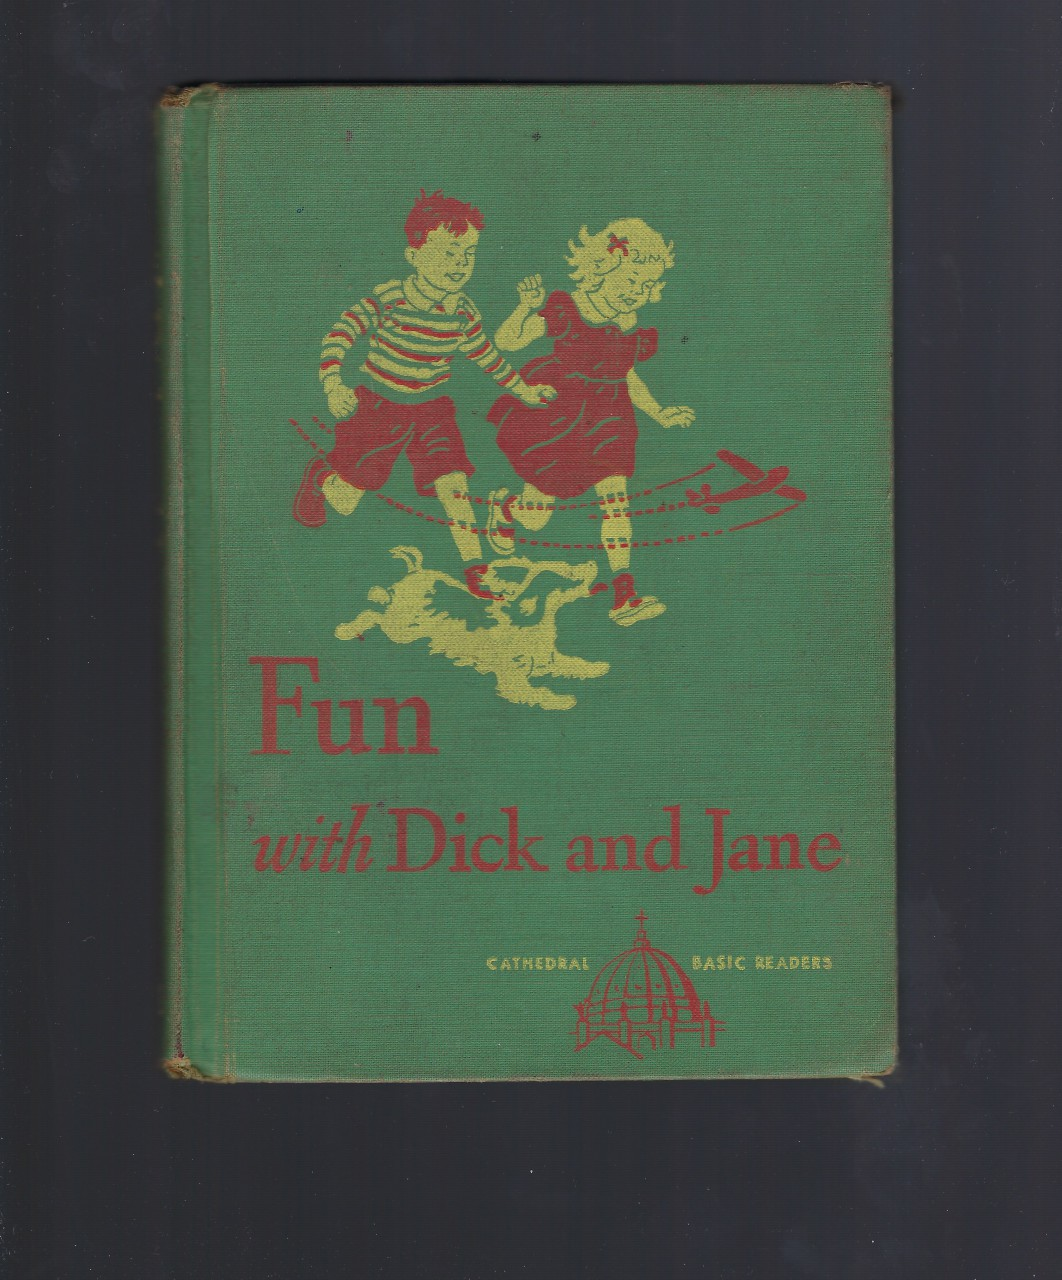 Fun with Dick and Jane 1947 (Cathedral Reader), The Reverend John A. O'Brien; William S. Gray; May Hill Arbuthnot; Eleanor Campbell [Illustrator]; Keith Ward [Illustrator]; Miriam Story Hurford [Illustrator];